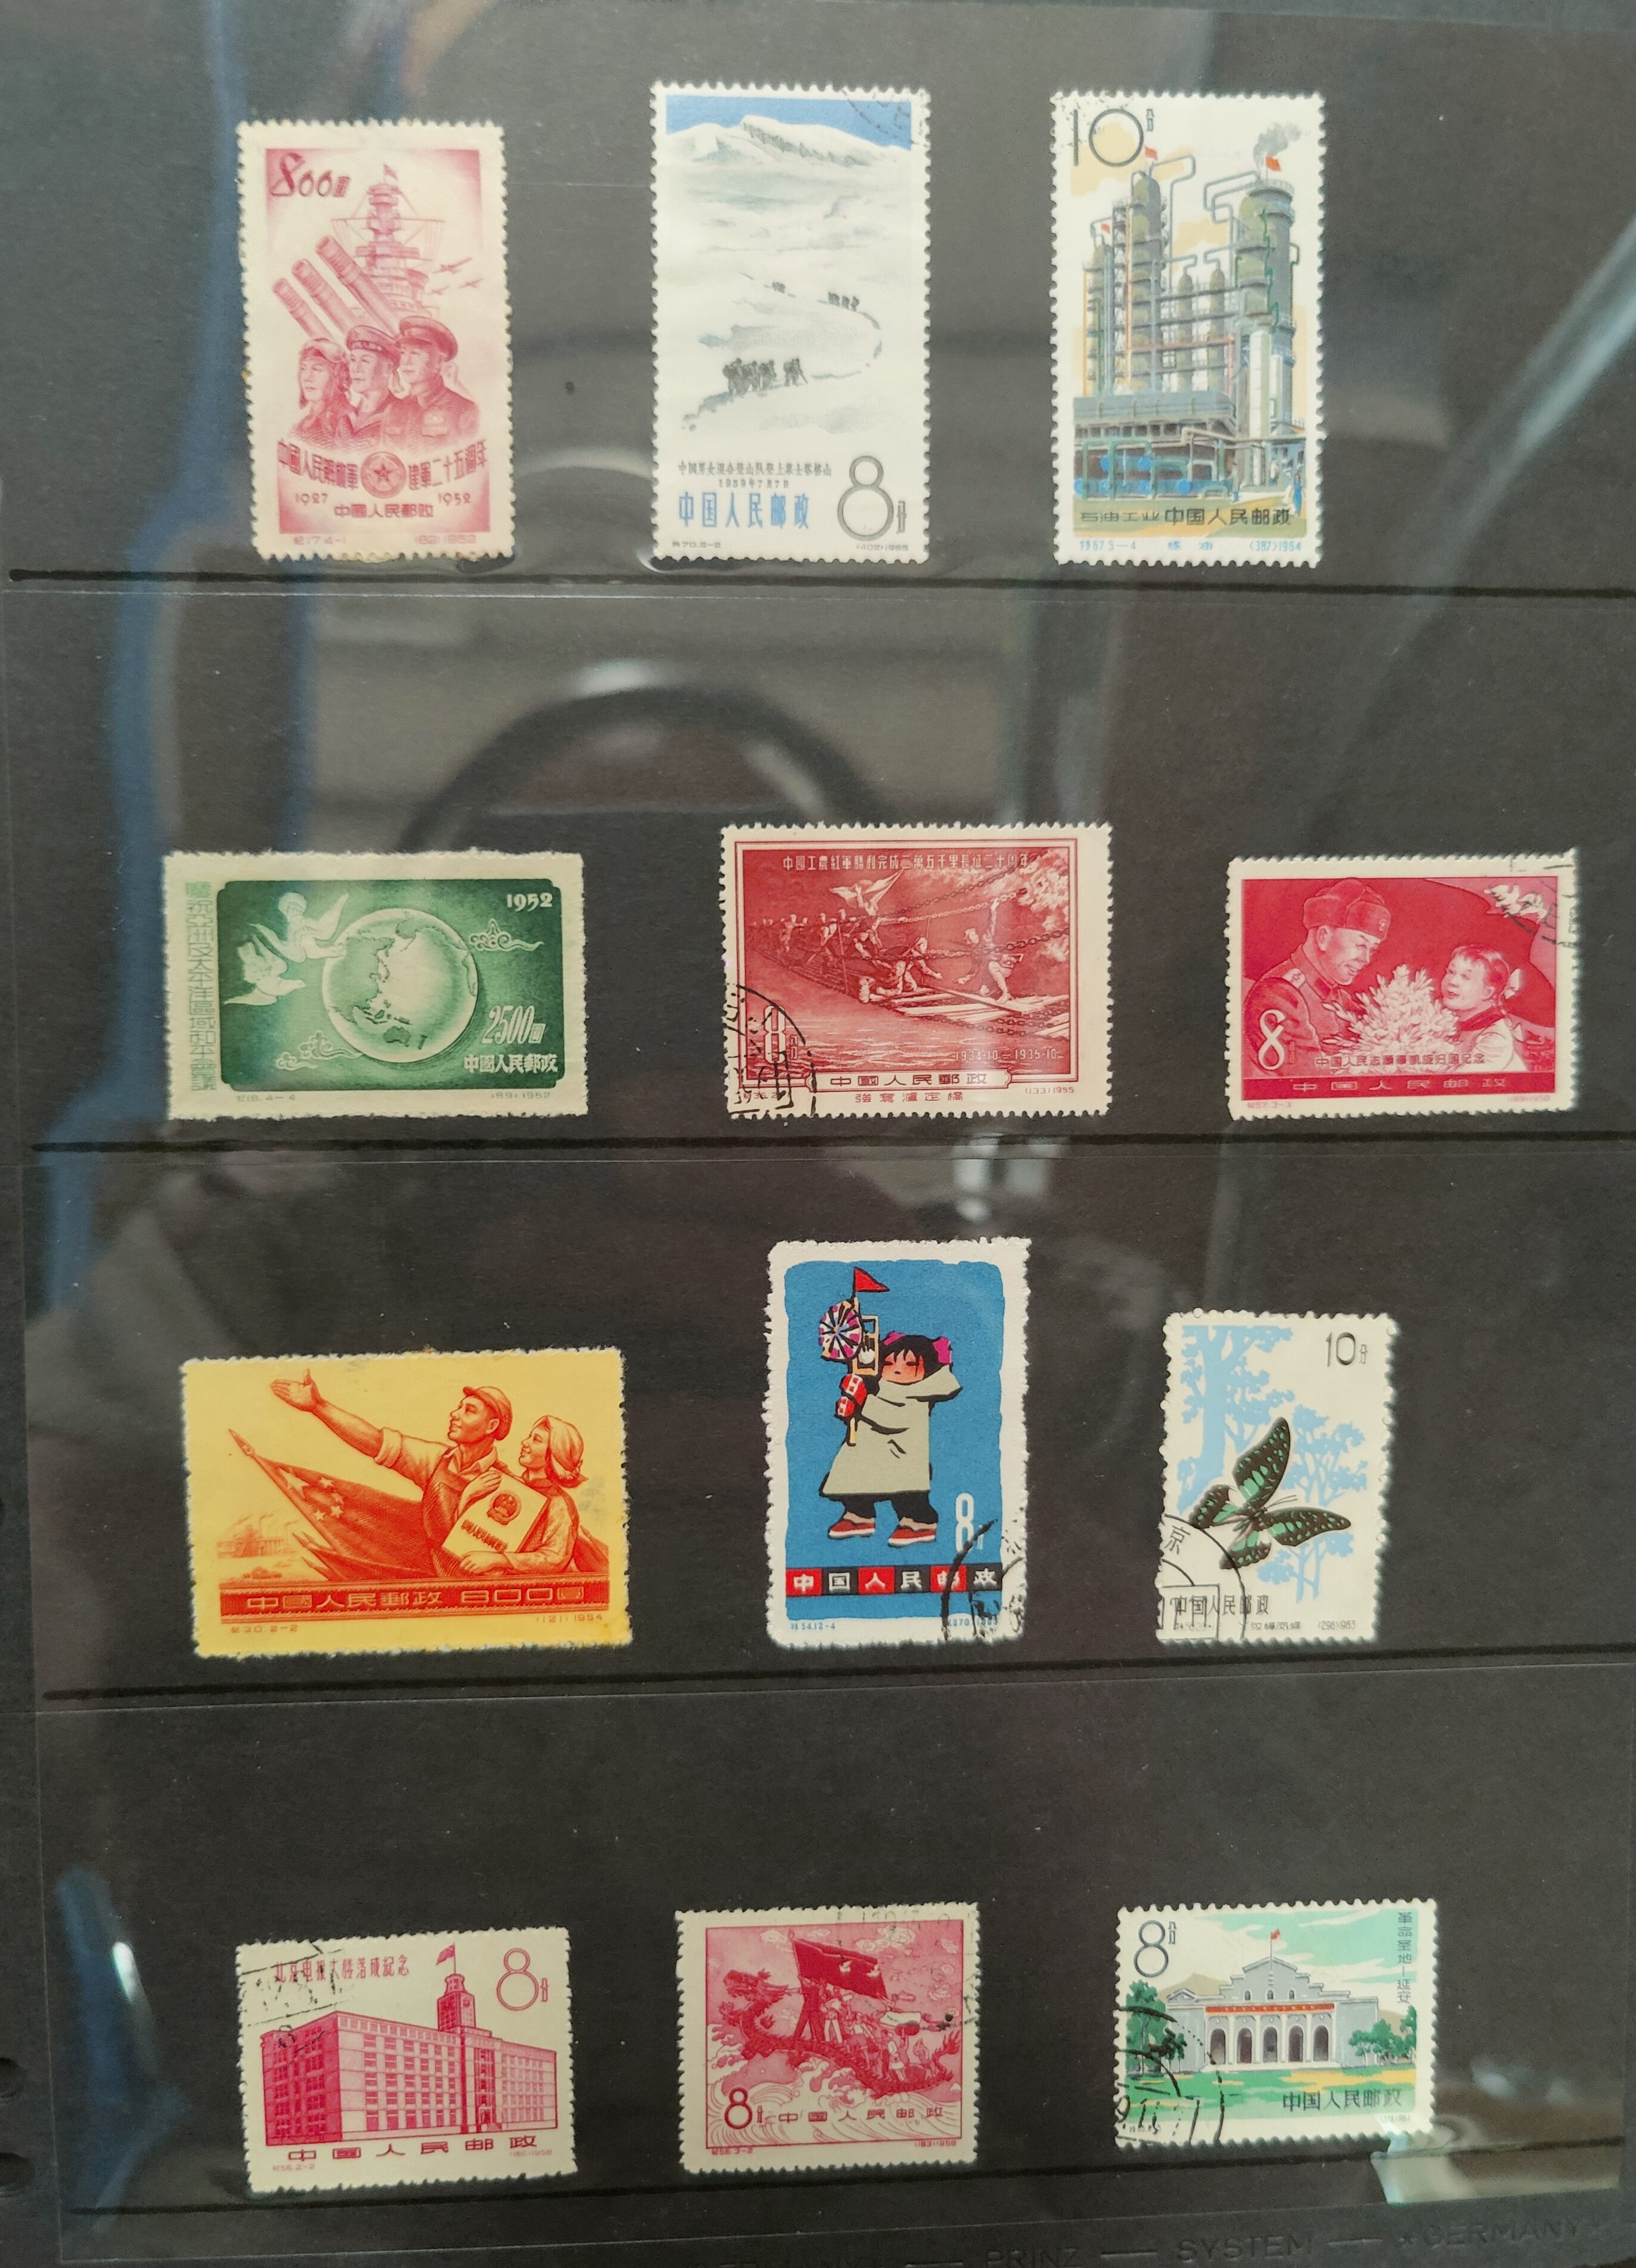 CHINA: a small collection in an album. - Image 4 of 5